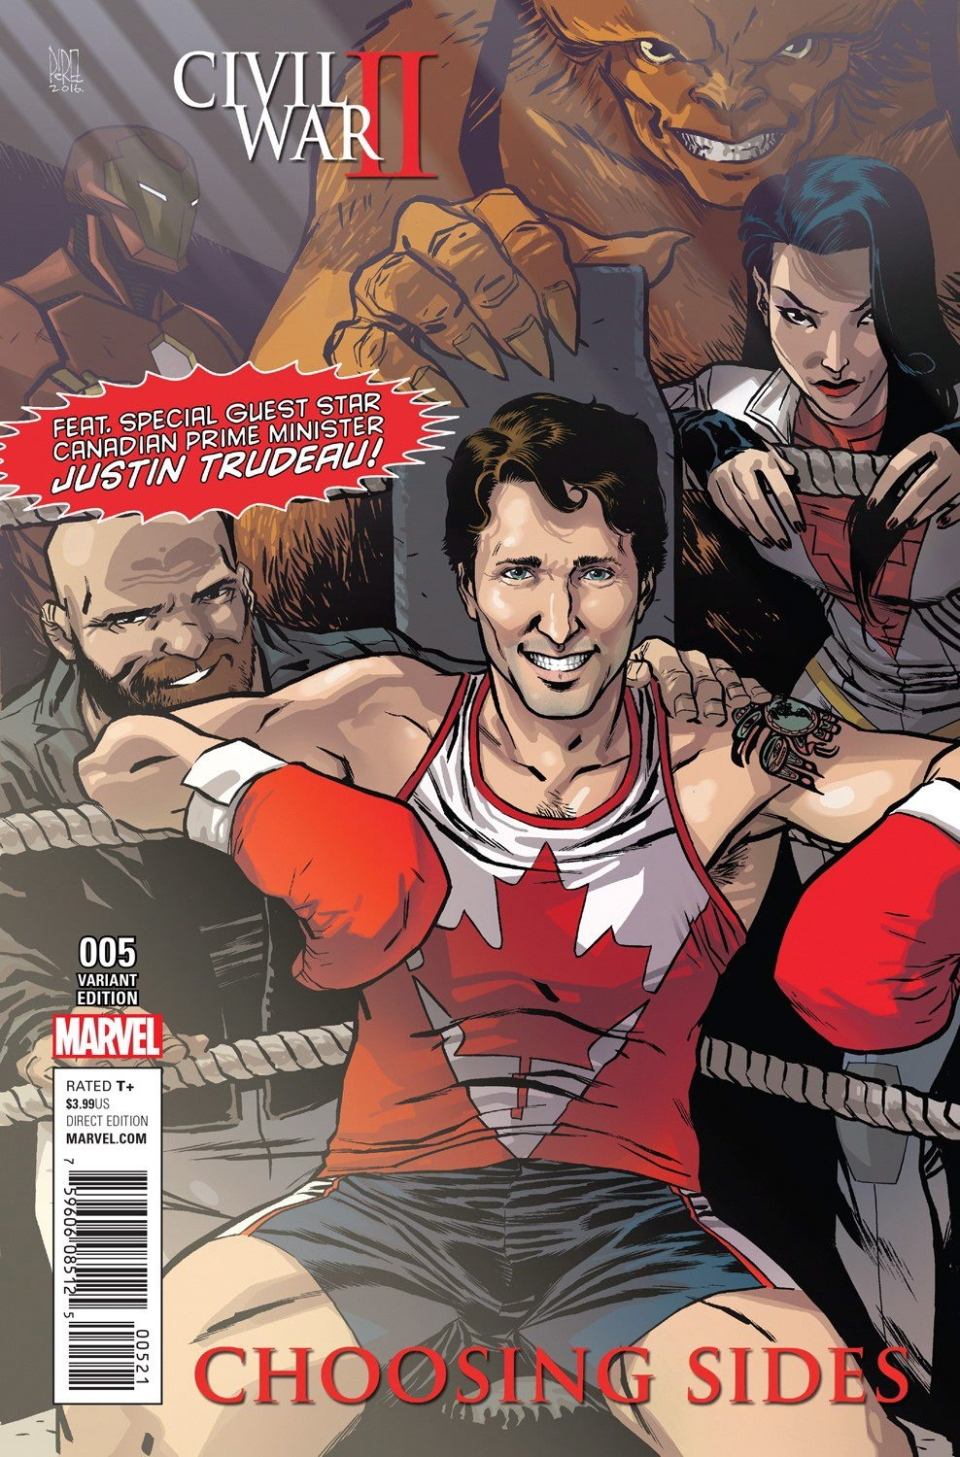 The variant cover, provided by Marvel, of the comic Civil War II: Choosing Sides #5, featuring Prime Minister Justin Trudeau surrounded by the members of Alpha Flight: Sasquatch, top, Puck, bottom left, Aurora, right, and Iron Man in the background is shown in a handout photo. Cover art by Ramon Parez. (THE CANADIAN PRESS / HO)